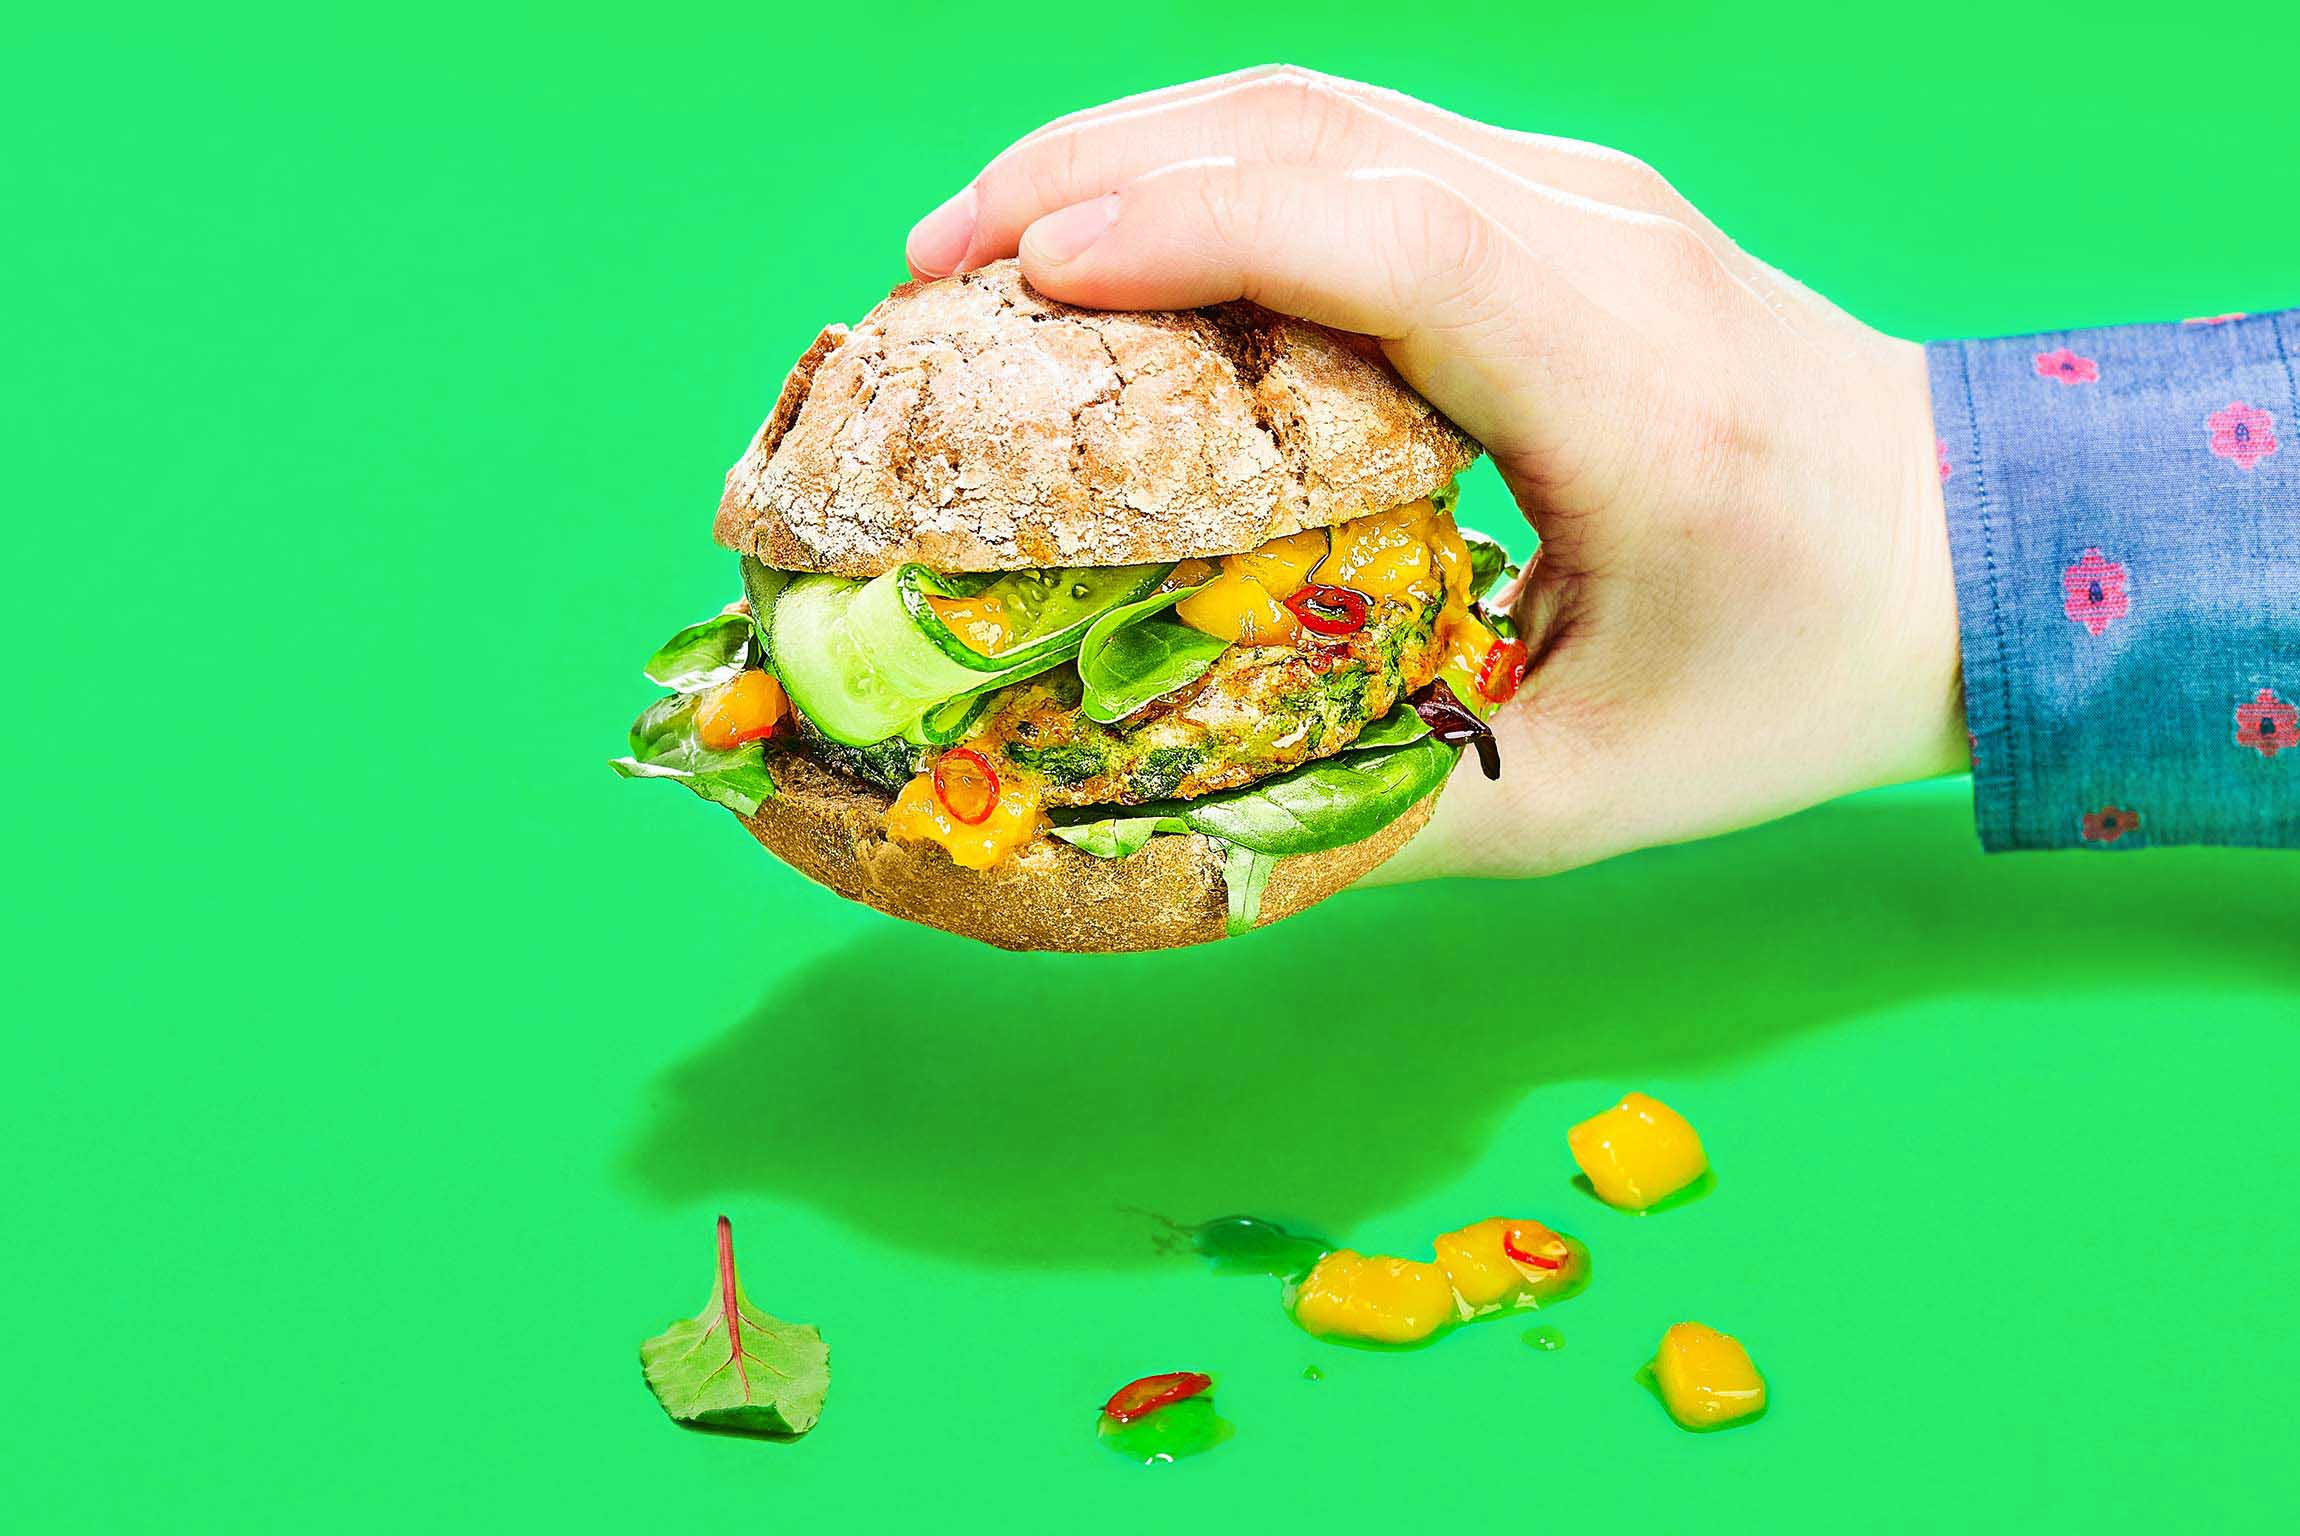 Man's hand holding a spinache burger with a buffalo worms patty Food commercial photography artificial light Philipp Burkart photographer in Hamburg